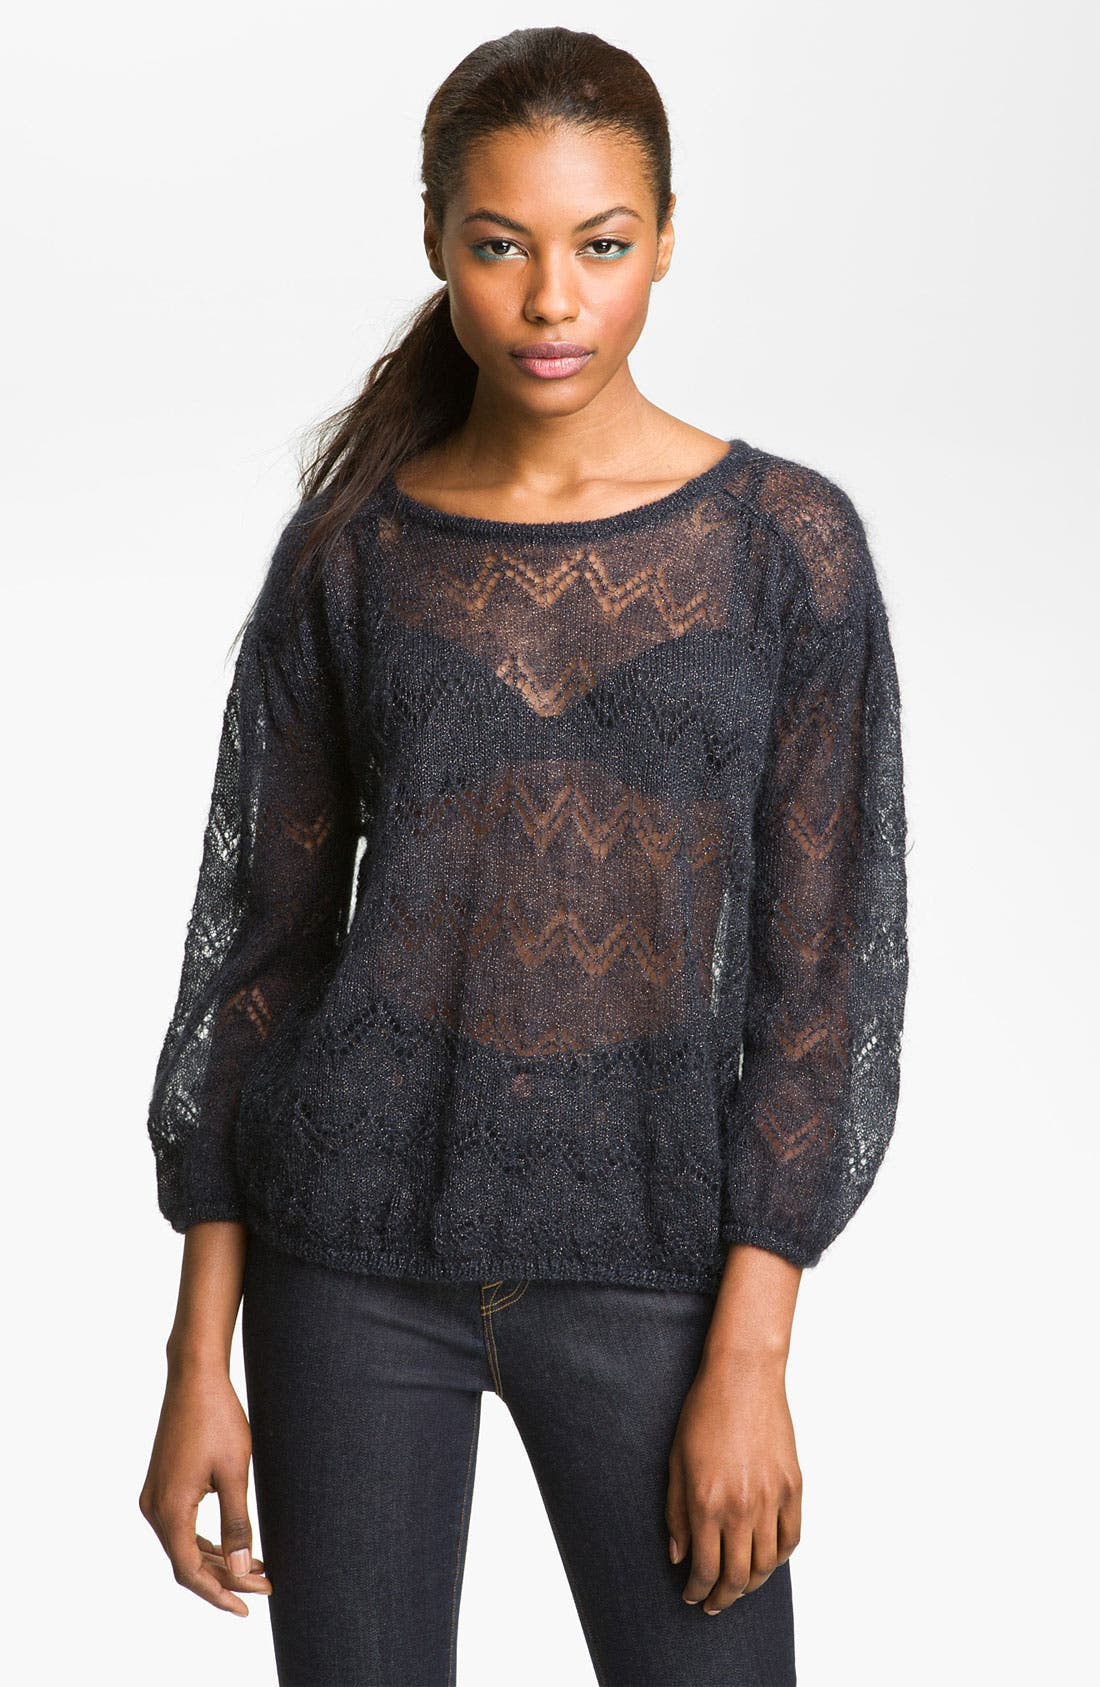 Alternate Image 1 Selected - MARC BY MARC JACOBS 'Milly' Sheer Keyhole Sweater